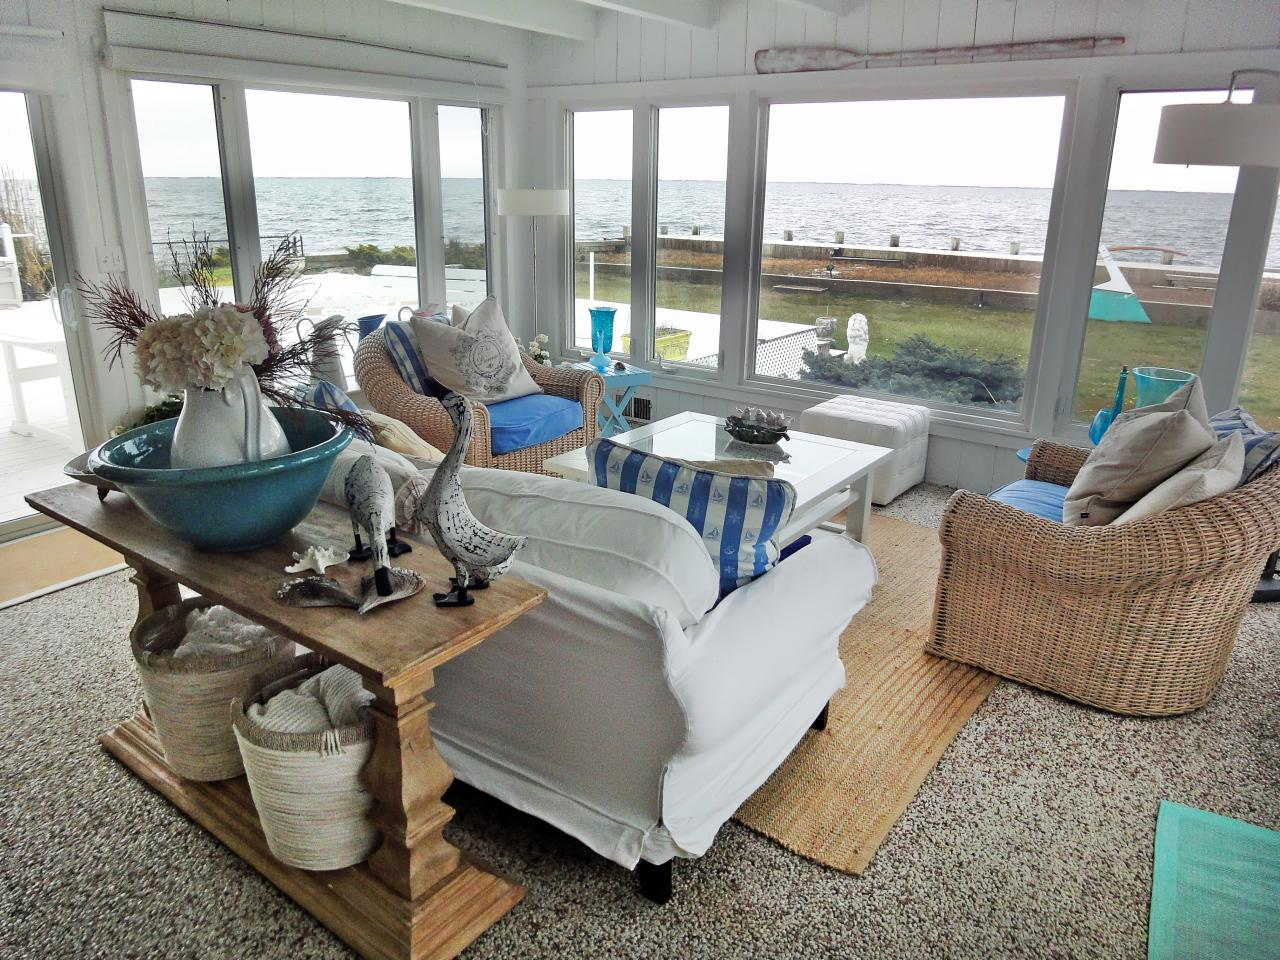 Coastal decorating ideas beachfront bargain hunt hgtv for Beach coastal decorating ideas